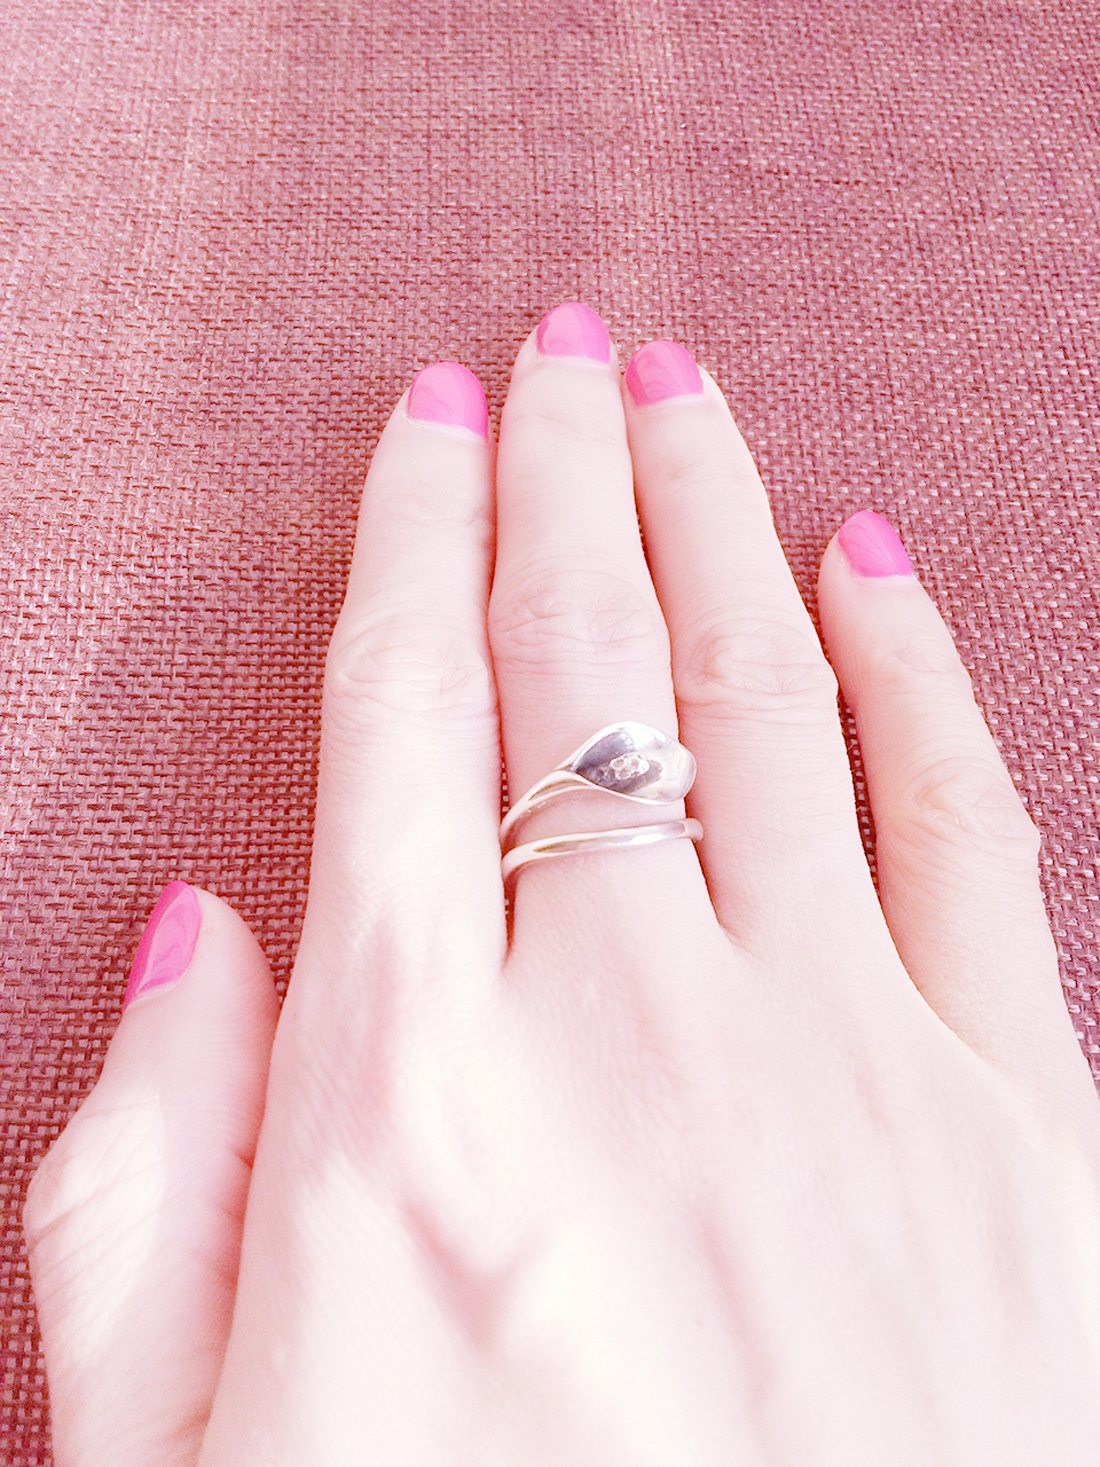 Rings Silver 925 For Women Girls Rings Silver Band Antique Rings For Her With 925 Stamp For Sensitive Skin Calla Lily Flower Vintage Genuine 925 Sterling Silver Rings Adjustable Size Good Gift by SHEIS LOVING (Image #6)